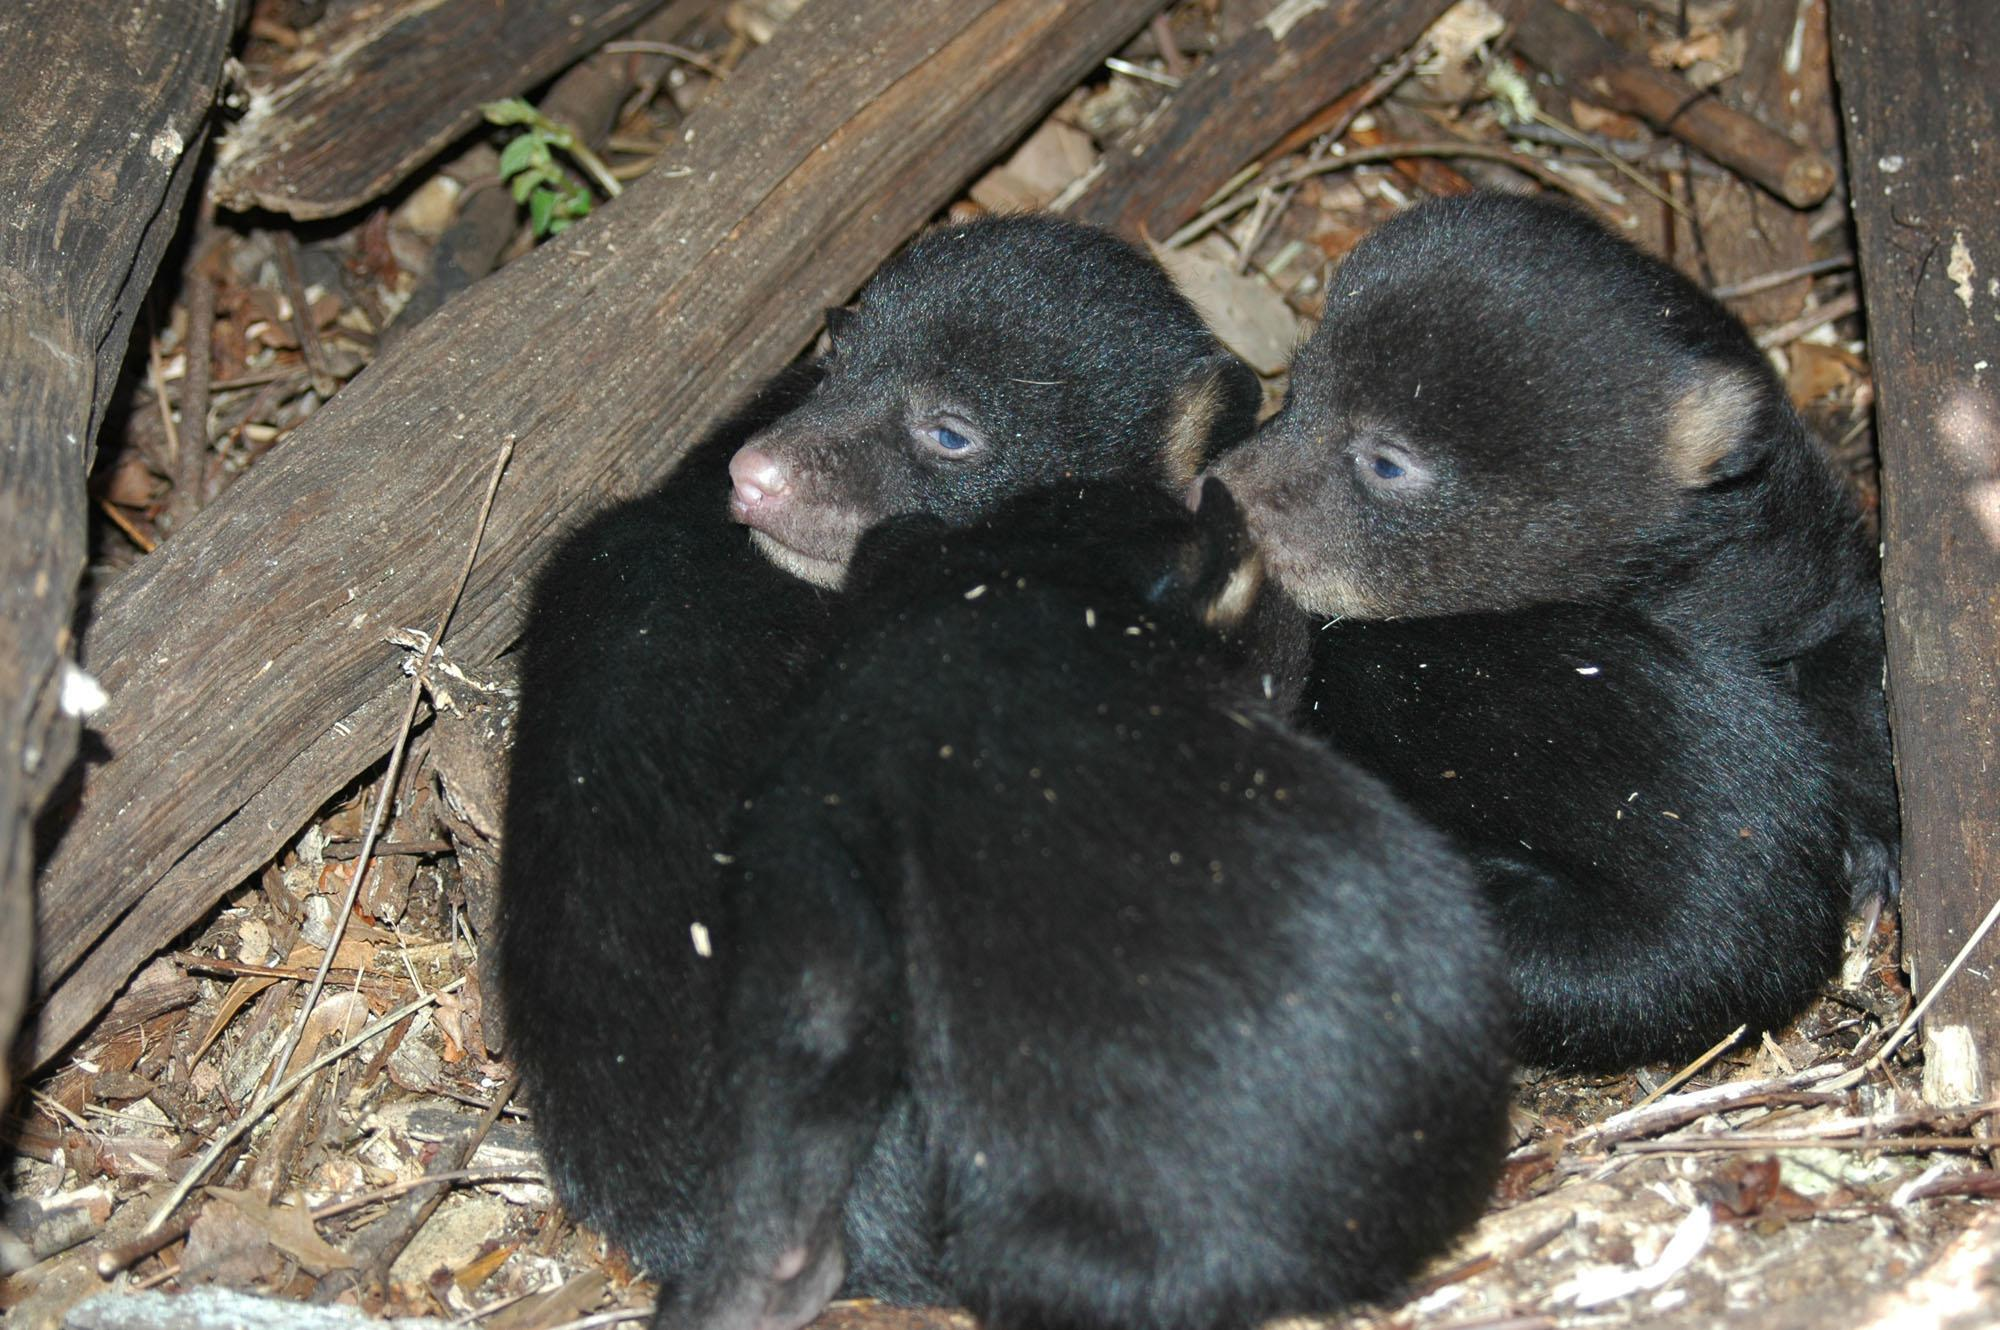 These South Mississippi cubs are part of a growing population of black bears in Mississippi. They were photographed by David Watts in Wilkinson County in March 2005.